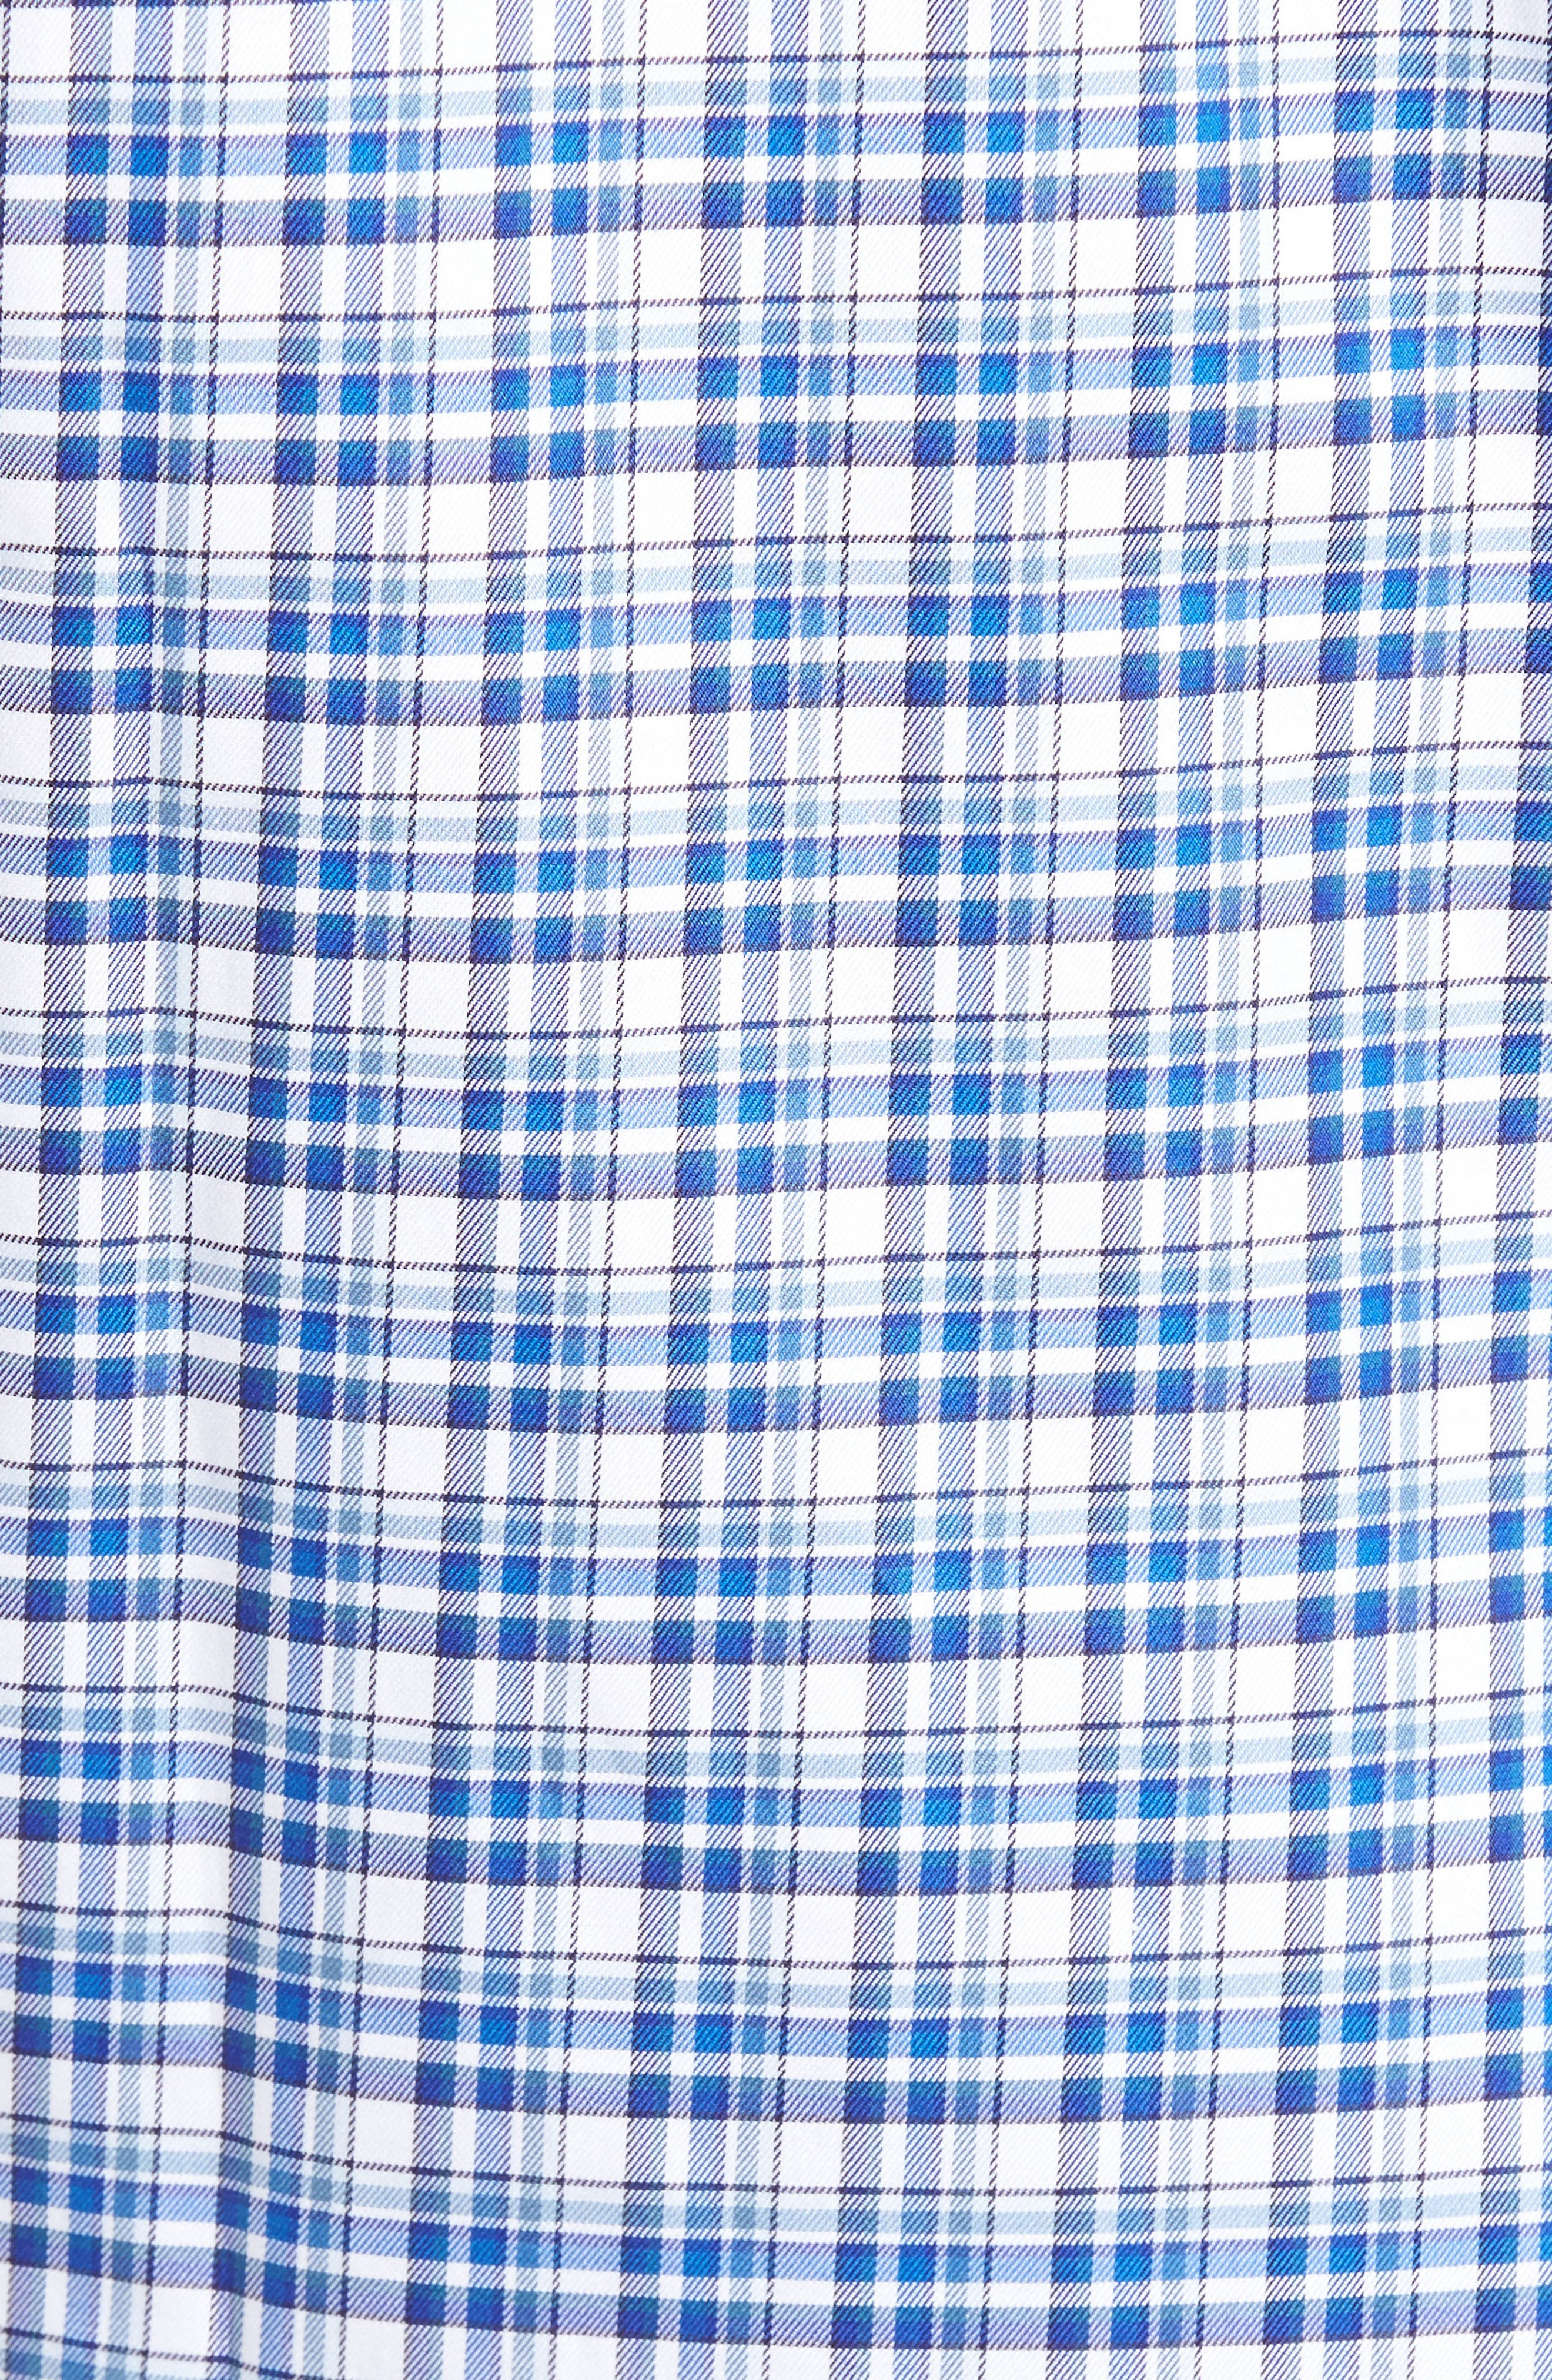 Anderson Classic Fit Plaid Micro Twill Sport Shirt,                             Alternate thumbnail 5, color,                             417